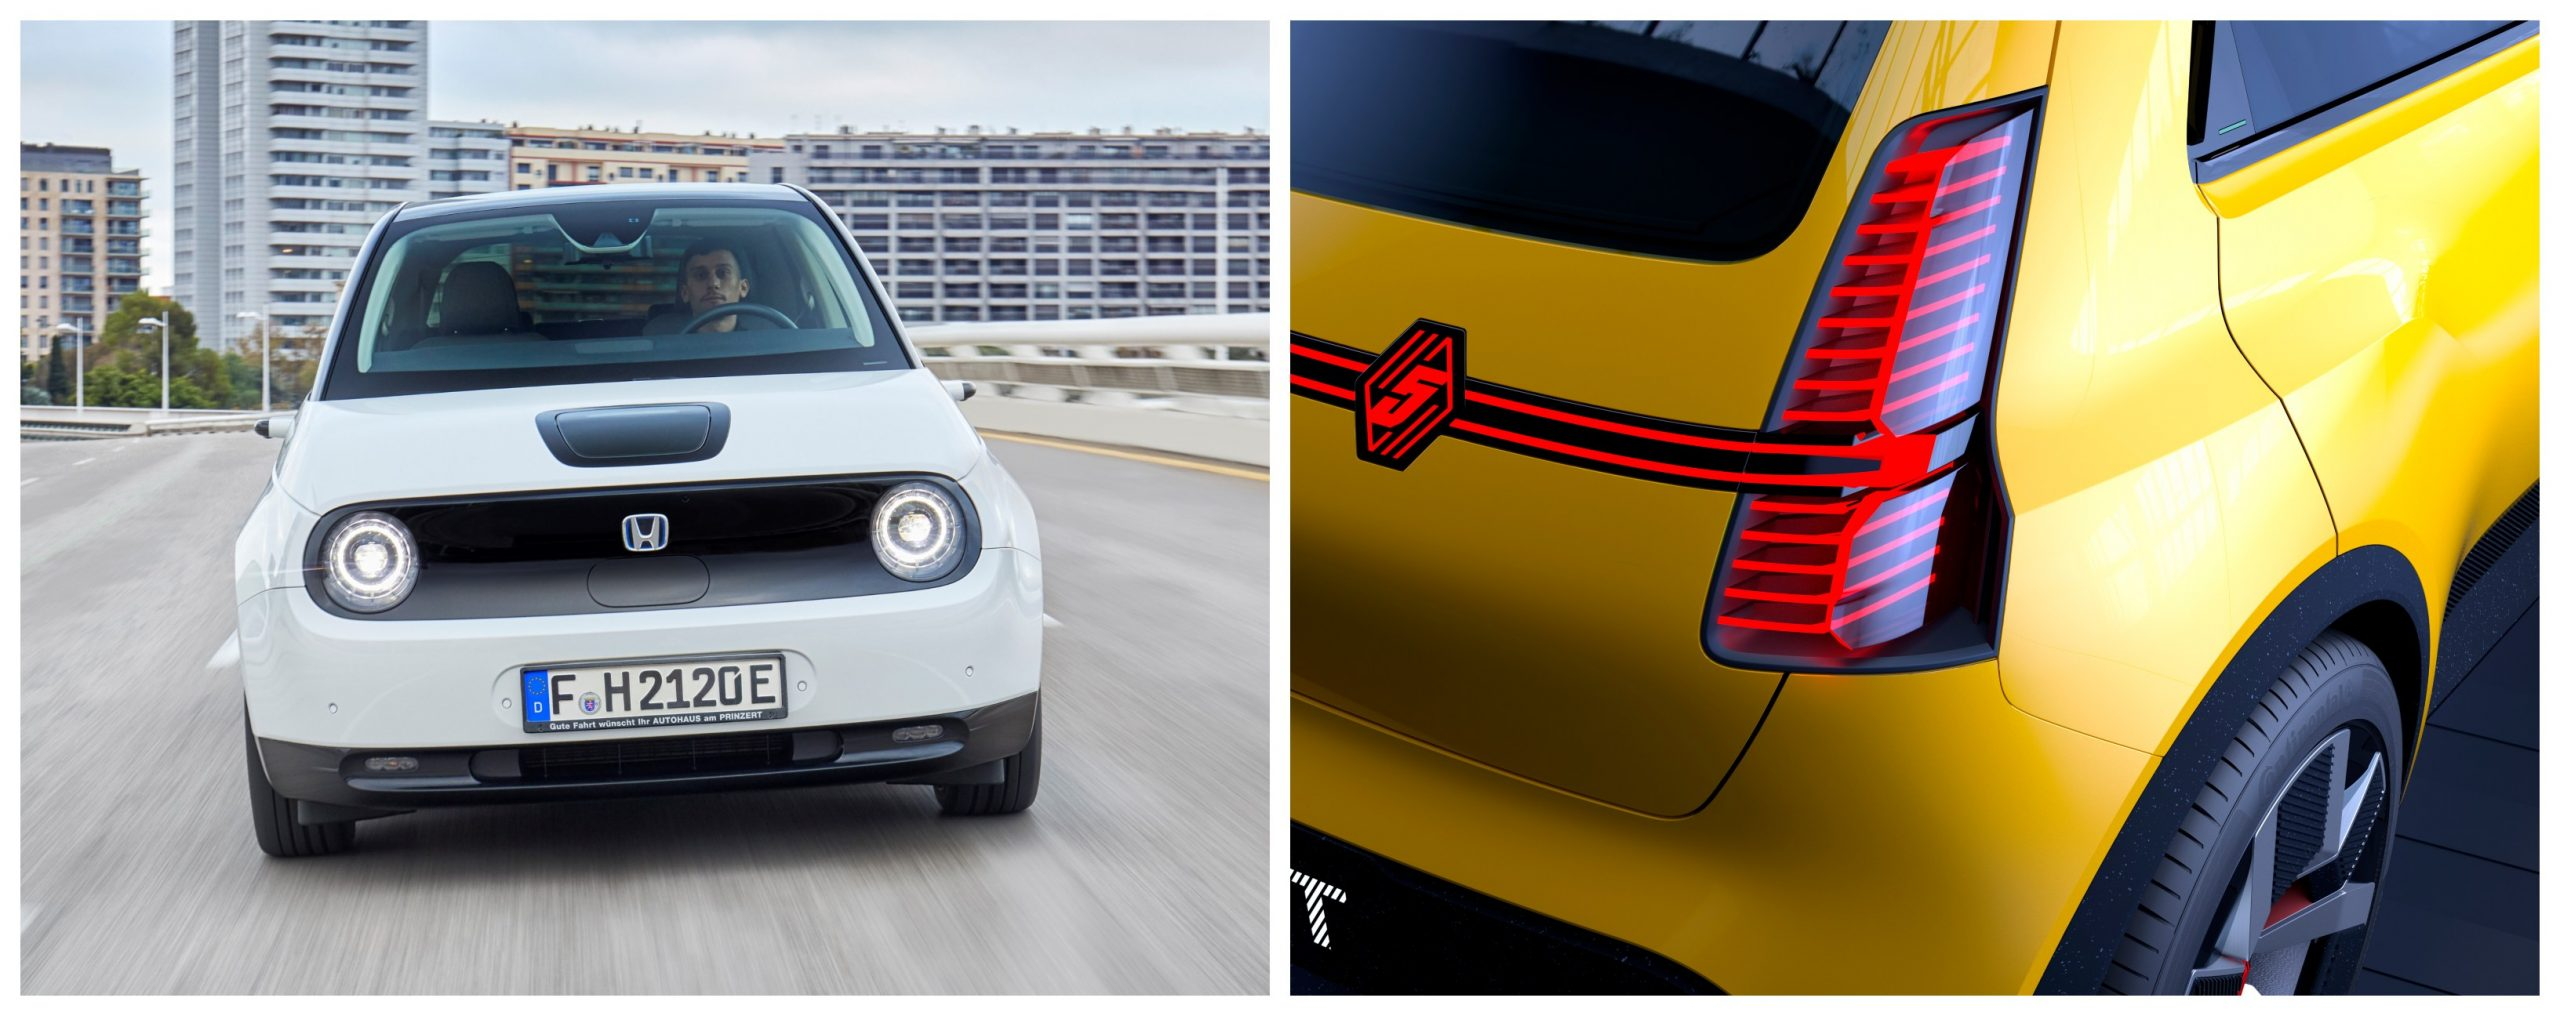 honda e headlights vs renault 5 rear lights